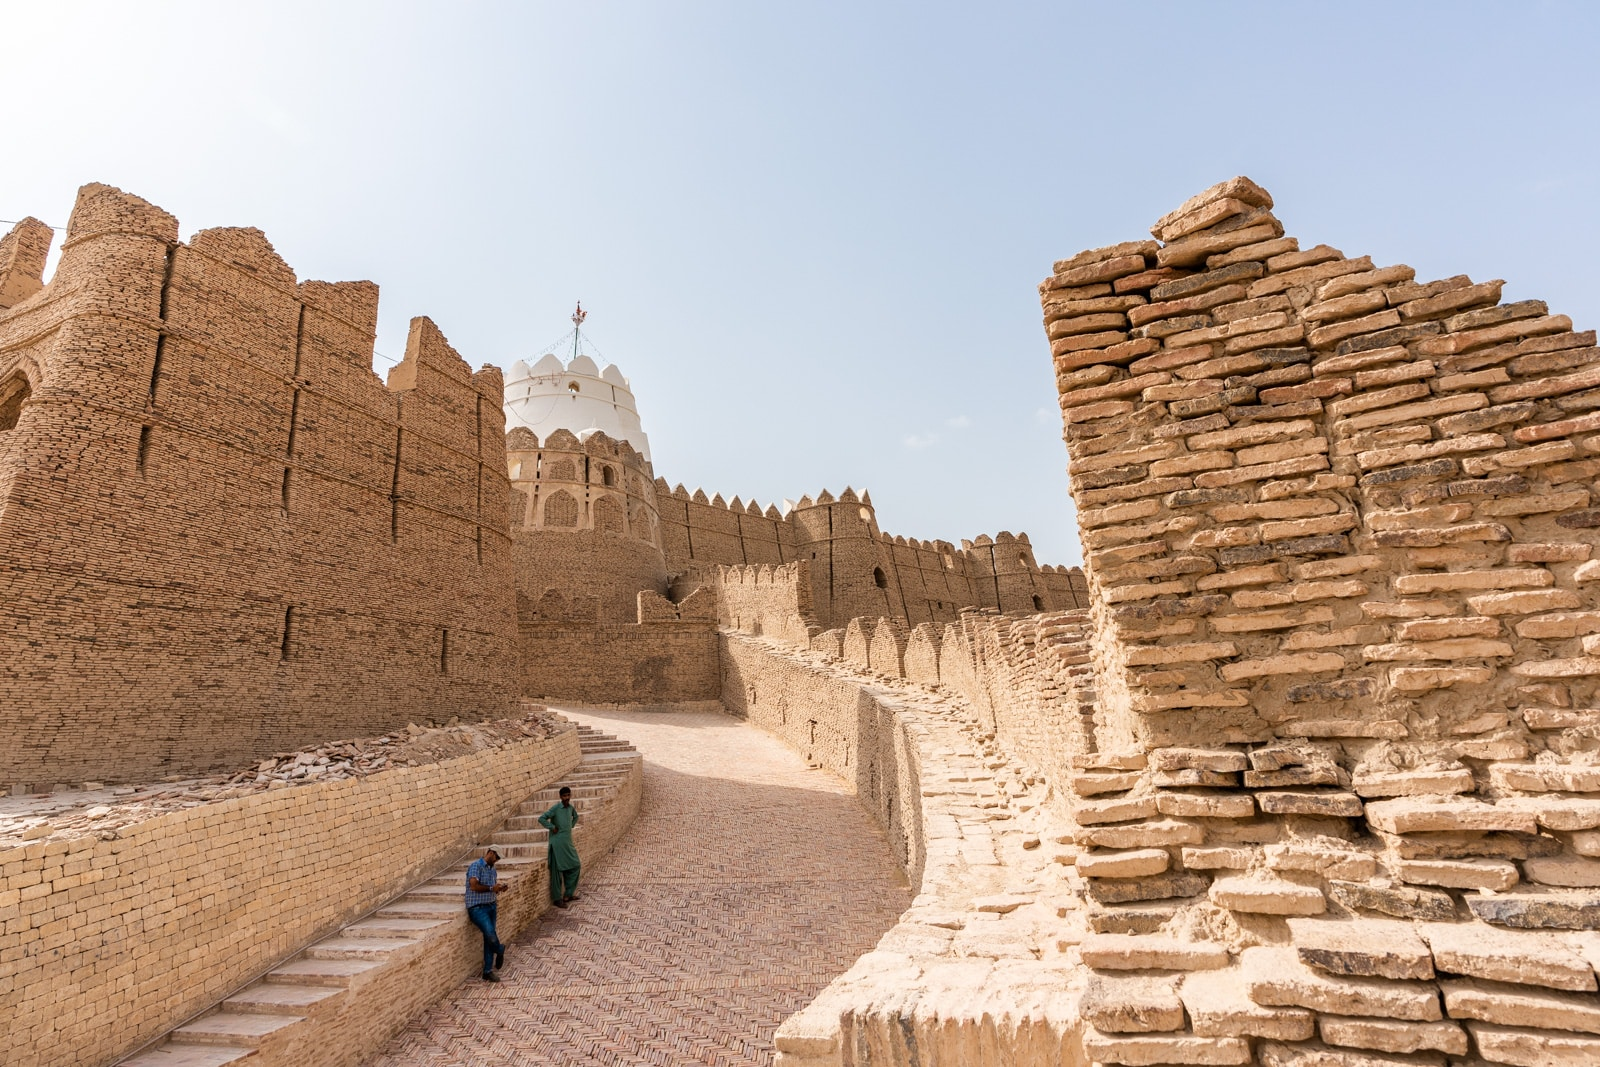 Sindh travel guide - Entry walkway to Kot Diji Fort - Lost With Purpose travel blog?